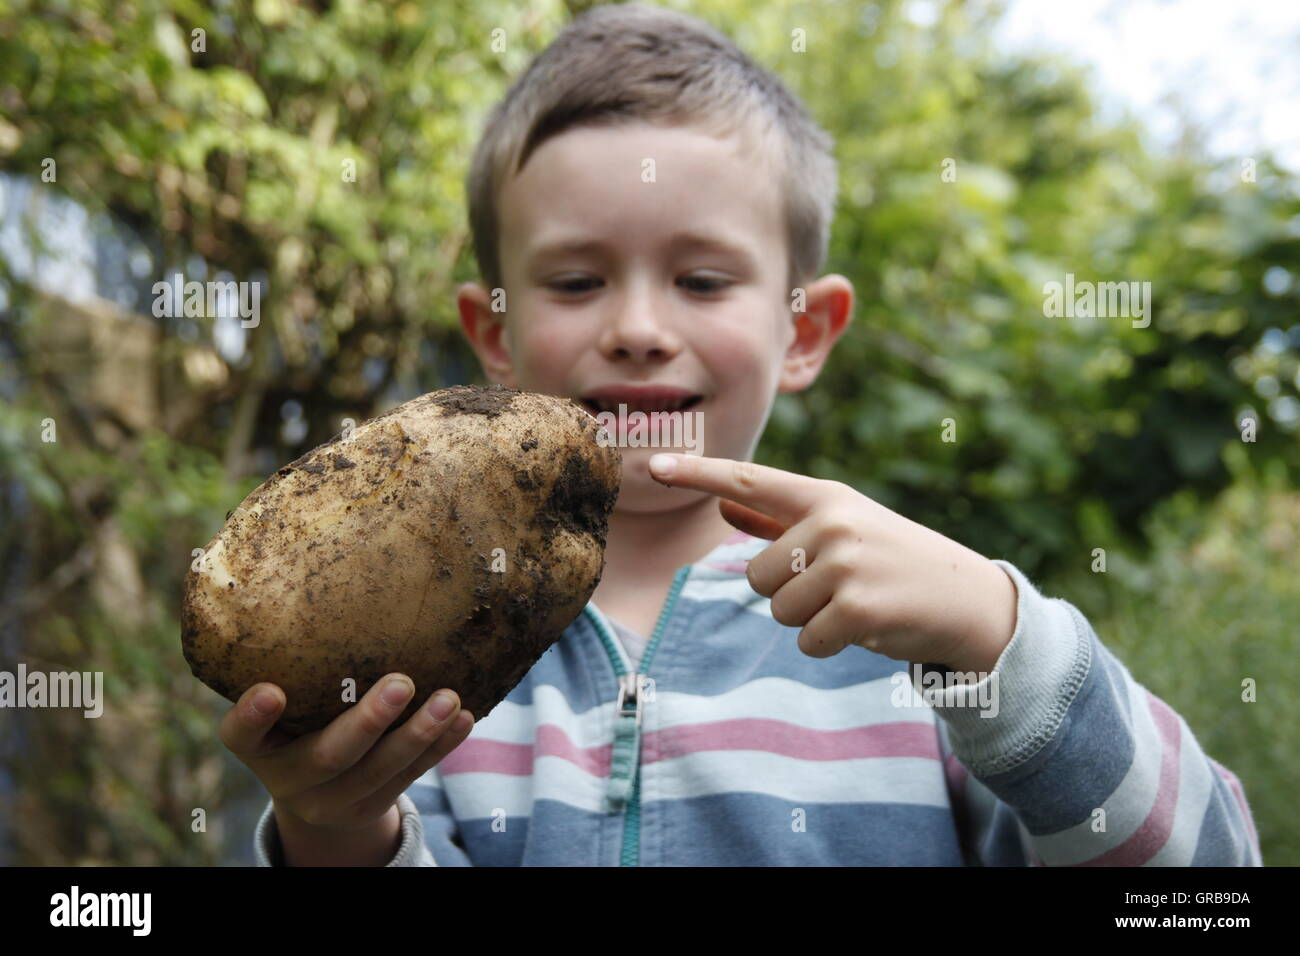 8 year old boy holding very large home grown potato Beverley, Yorkshire - Stock Image